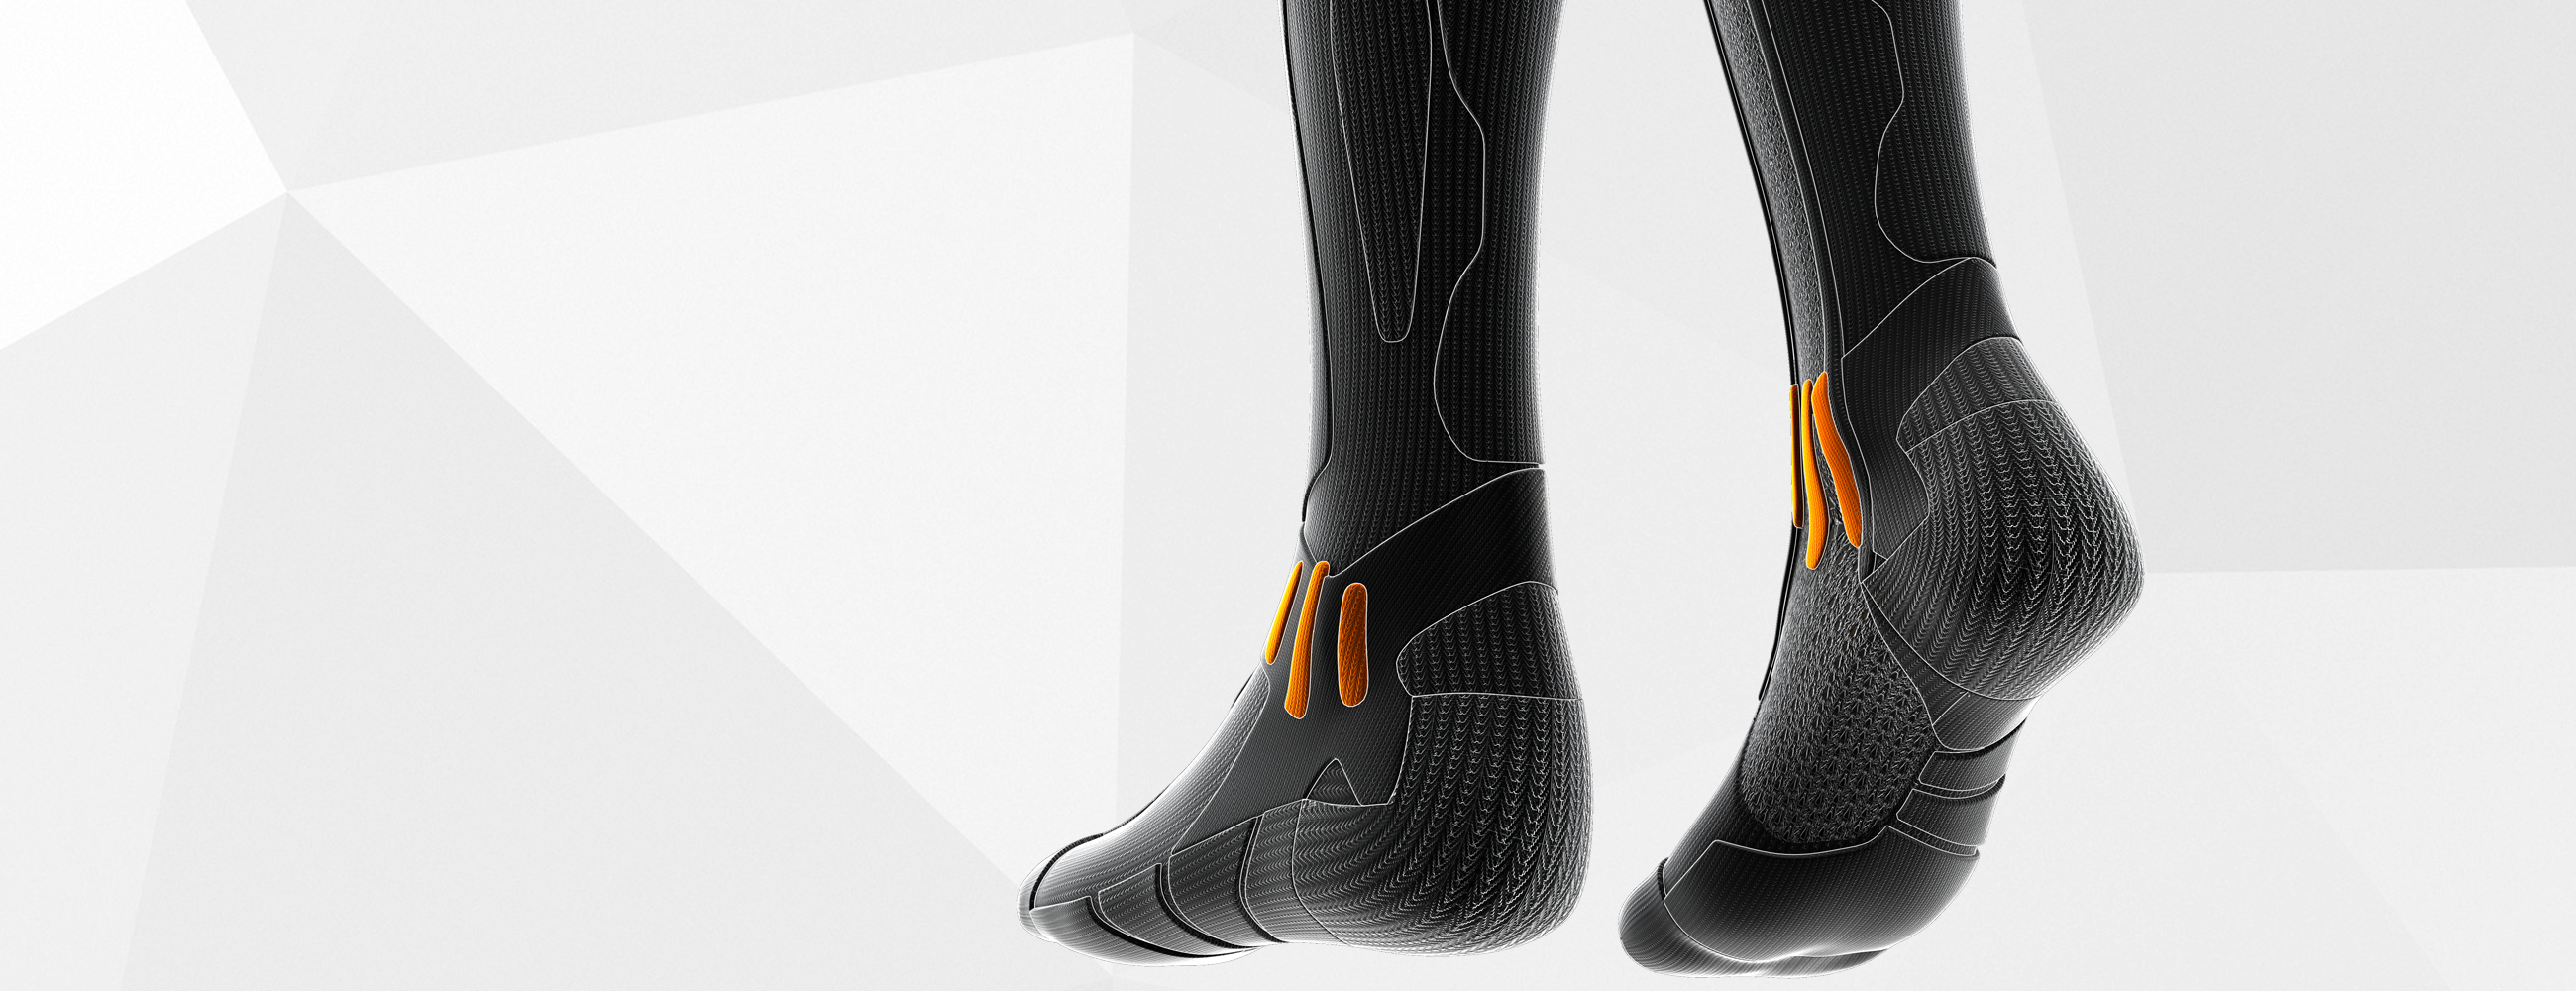 AirFlow Ankle Pads